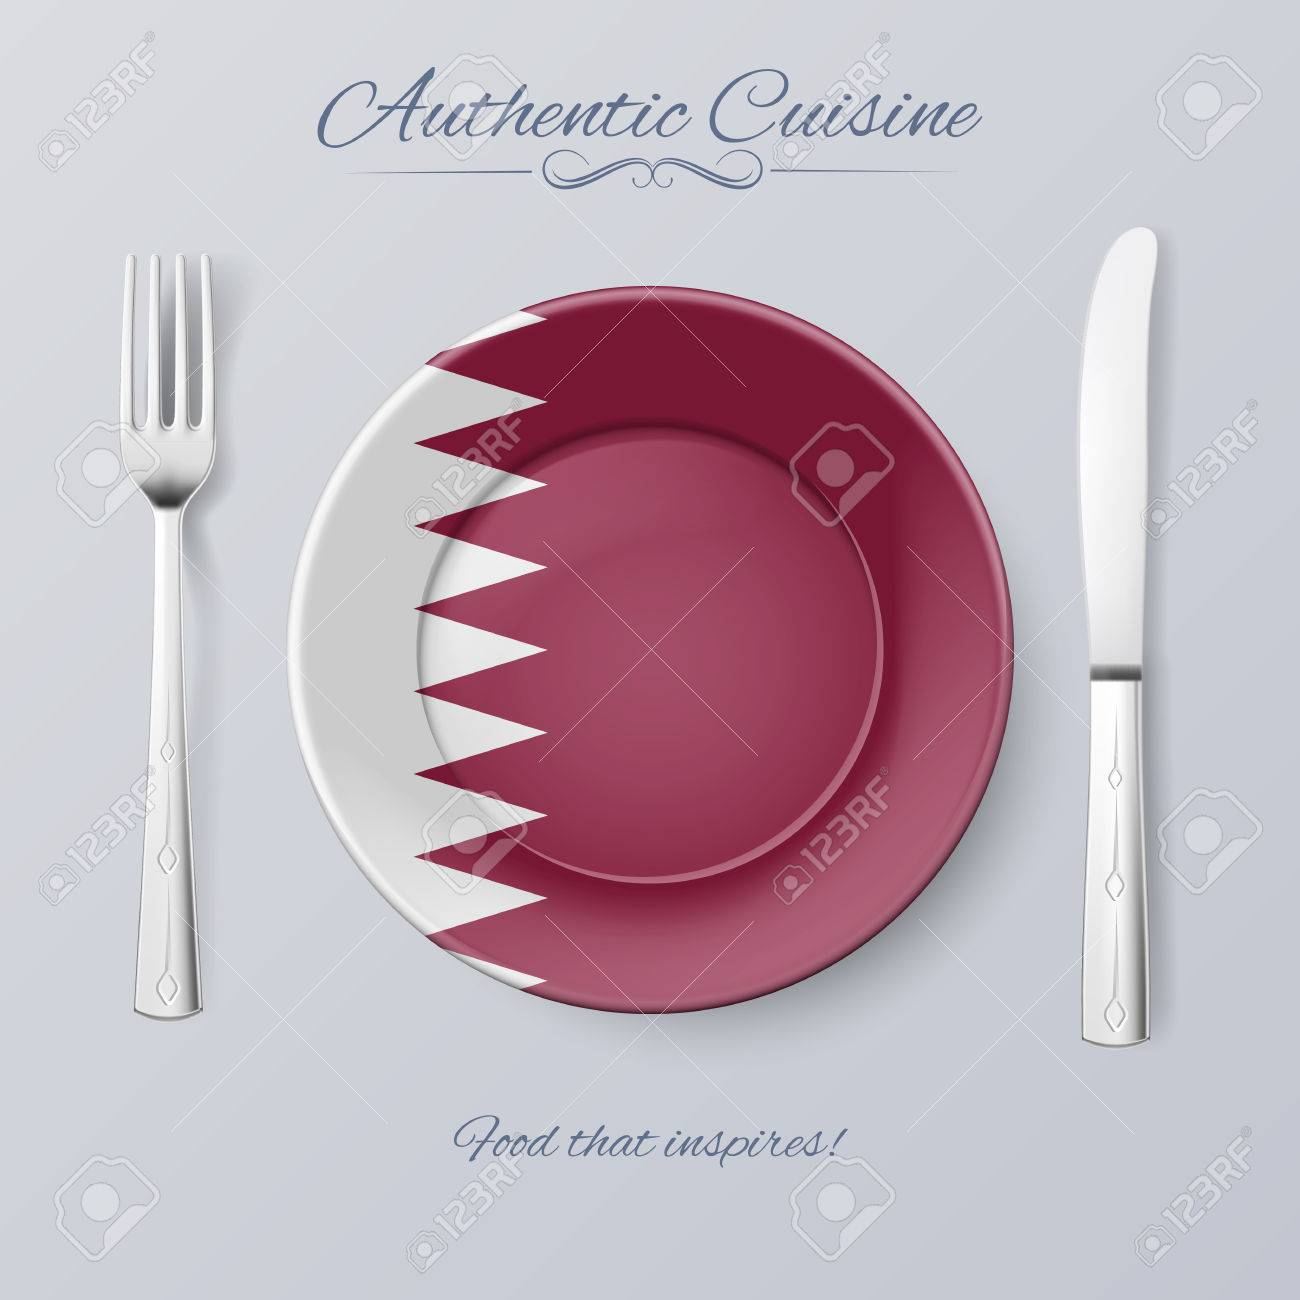 Authentic Cuisine Of Qatar Plate With Qatari Flag And Cutlery